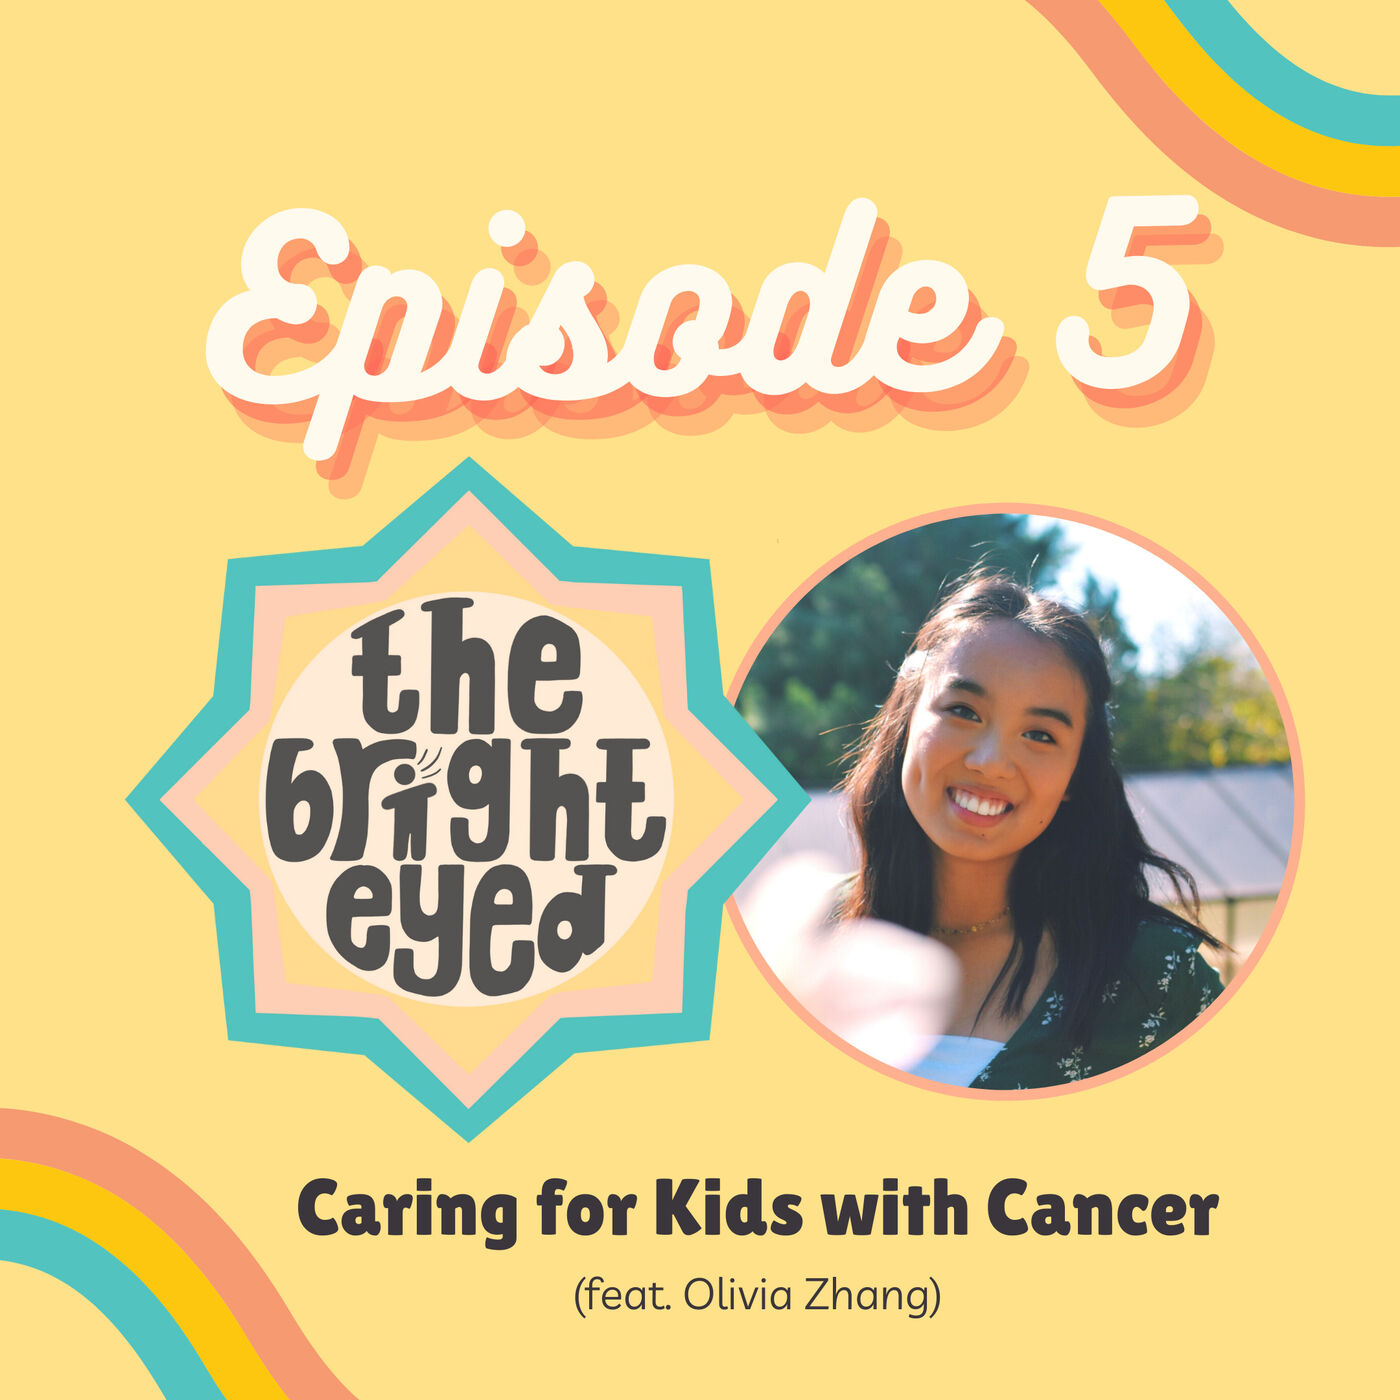 Caring for Kids with Cancer (feat. Olivia Zhang)